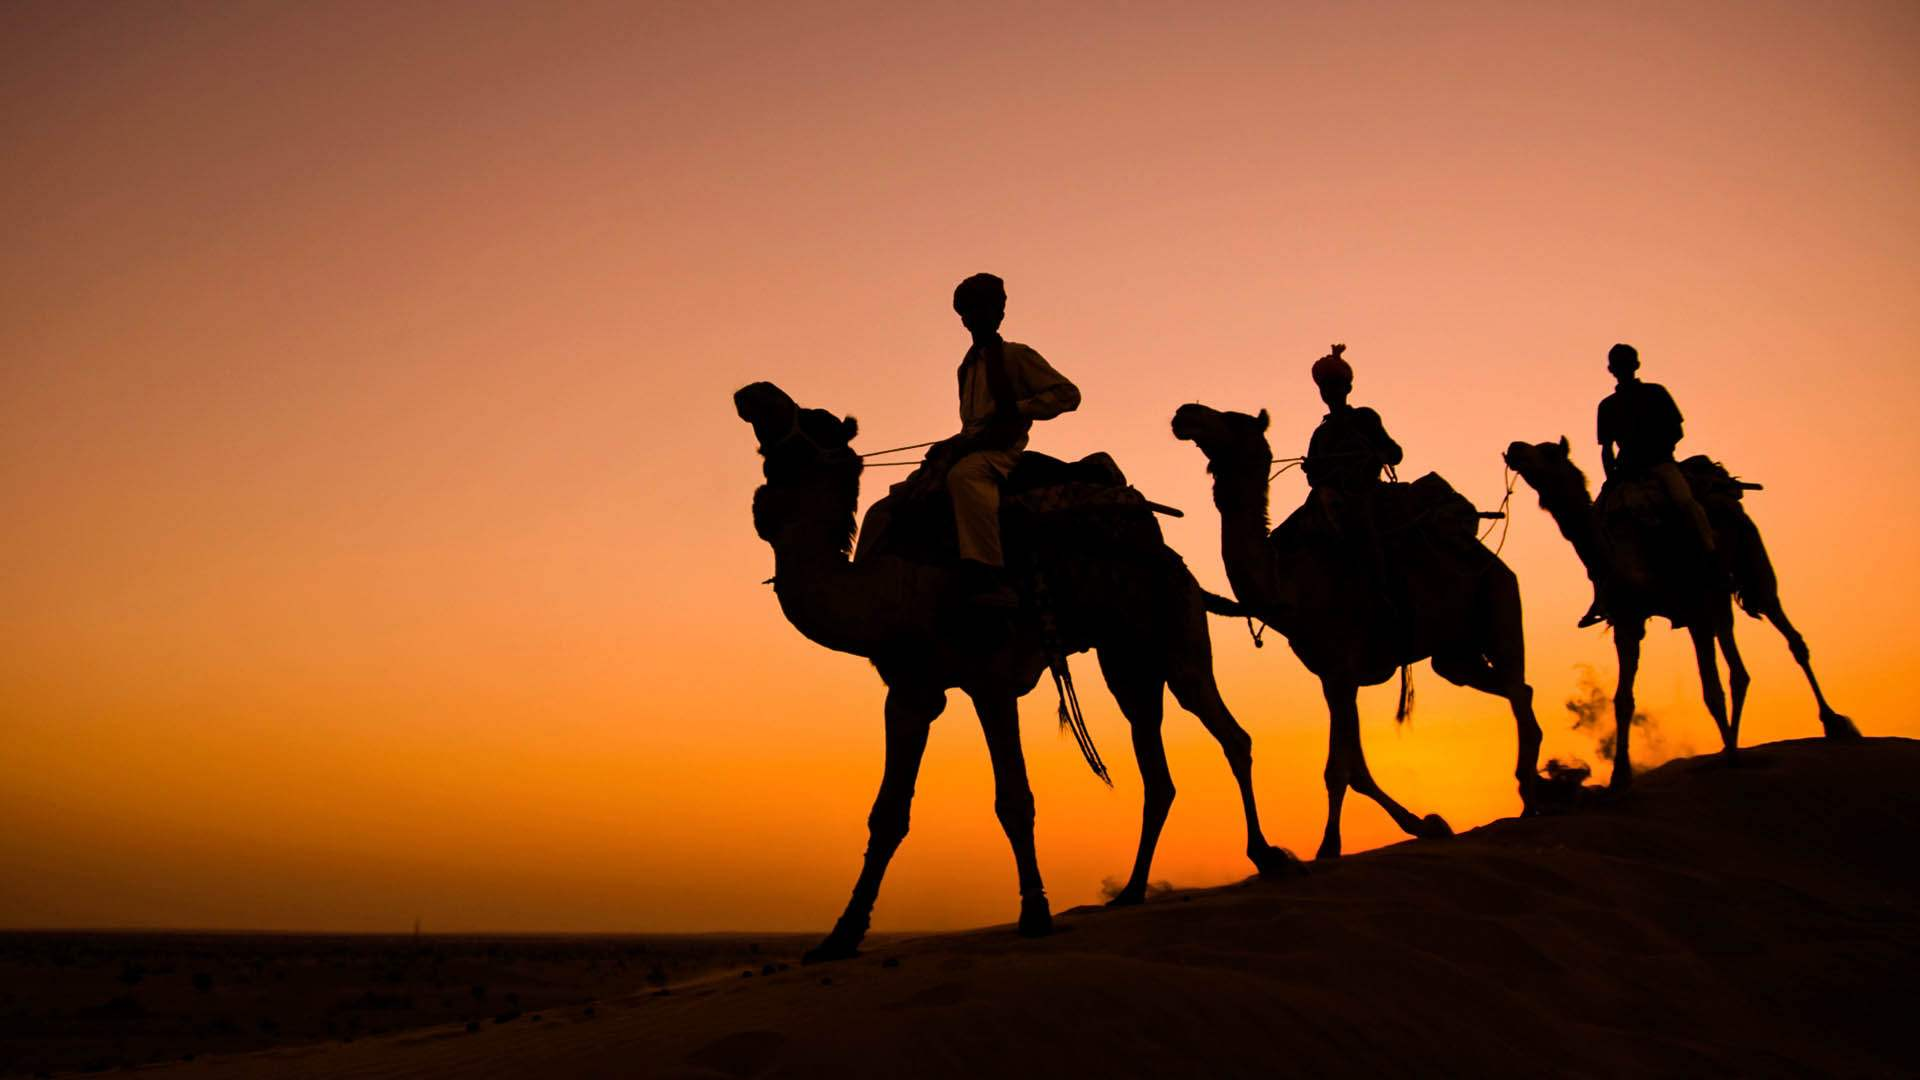 Jaisalmer: Dune Bashing, Haunted Village Walks and Camping this Republic Day